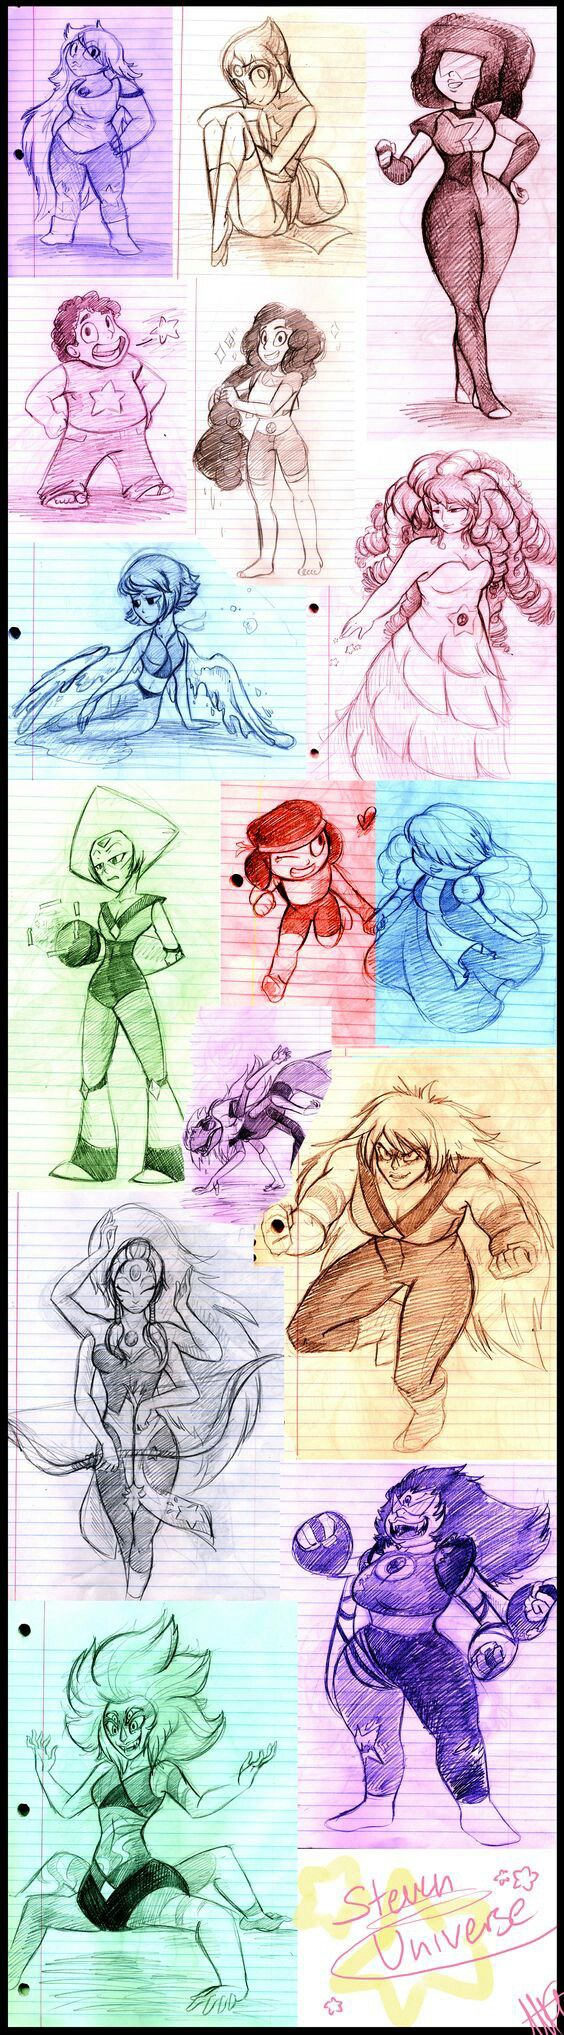 An Amazing artist drew these and they are Awesome!!!